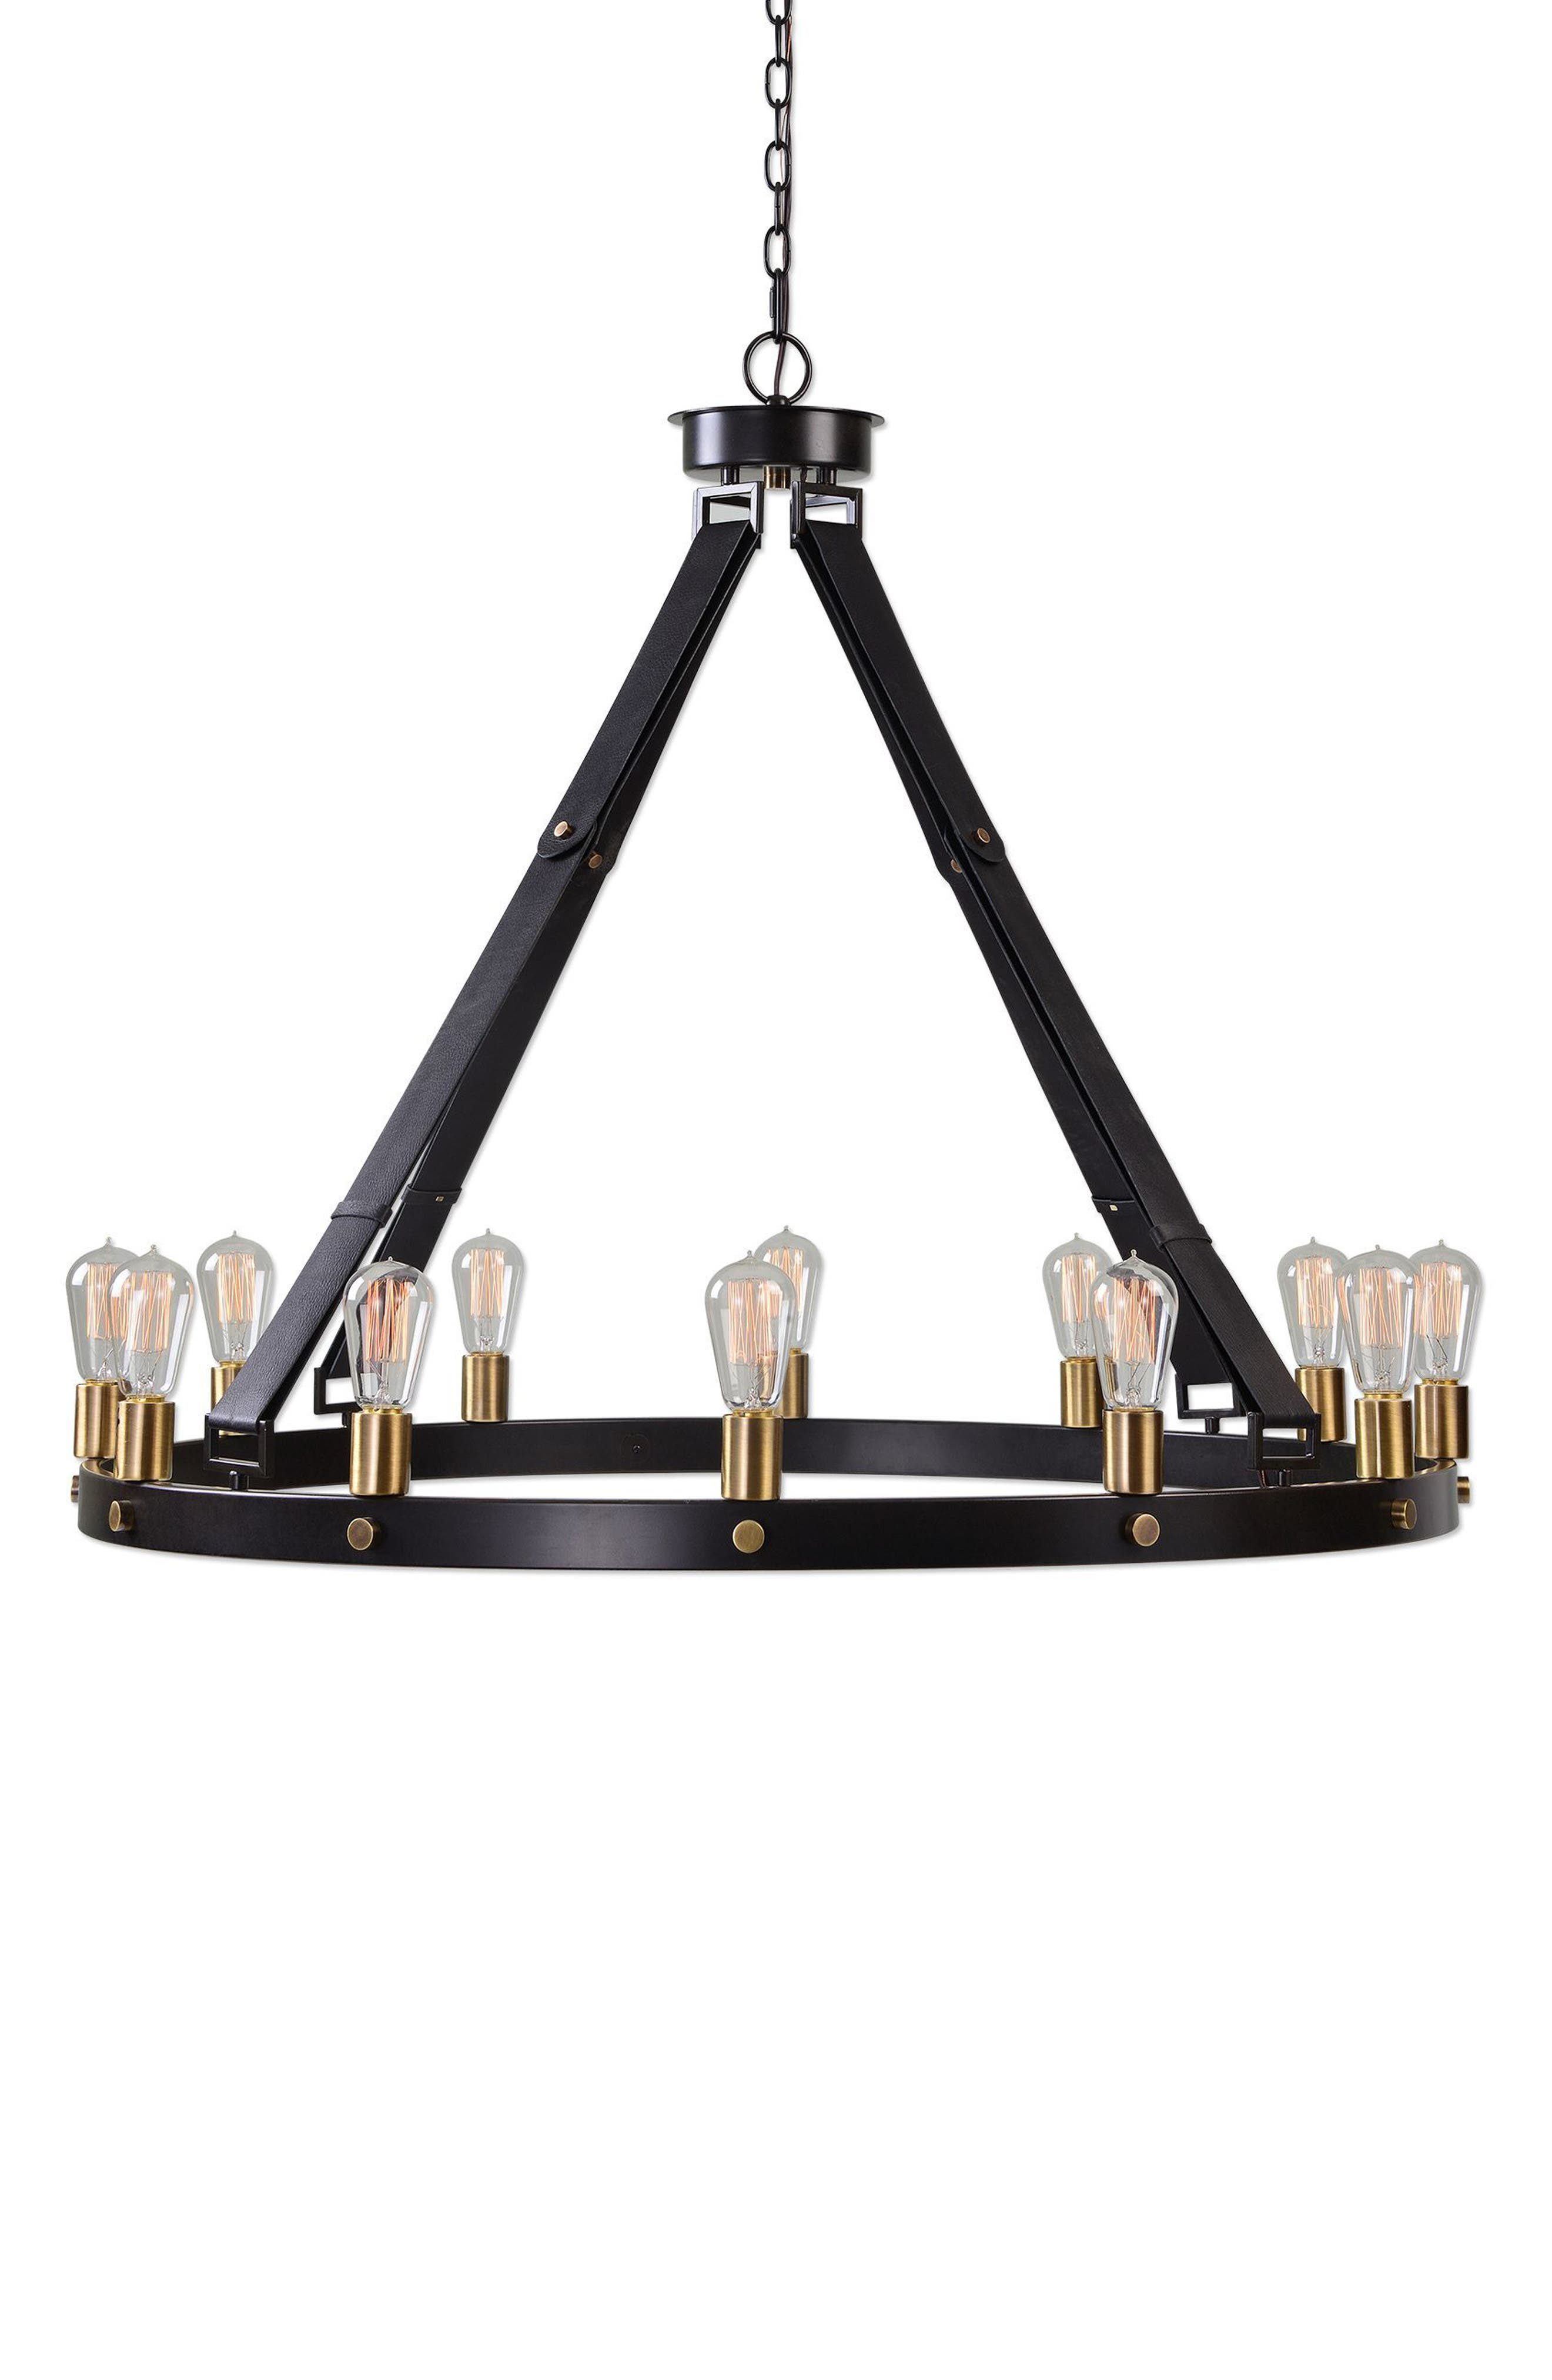 Alternate Image 1 Selected - Uttermost Marlow Chandelier